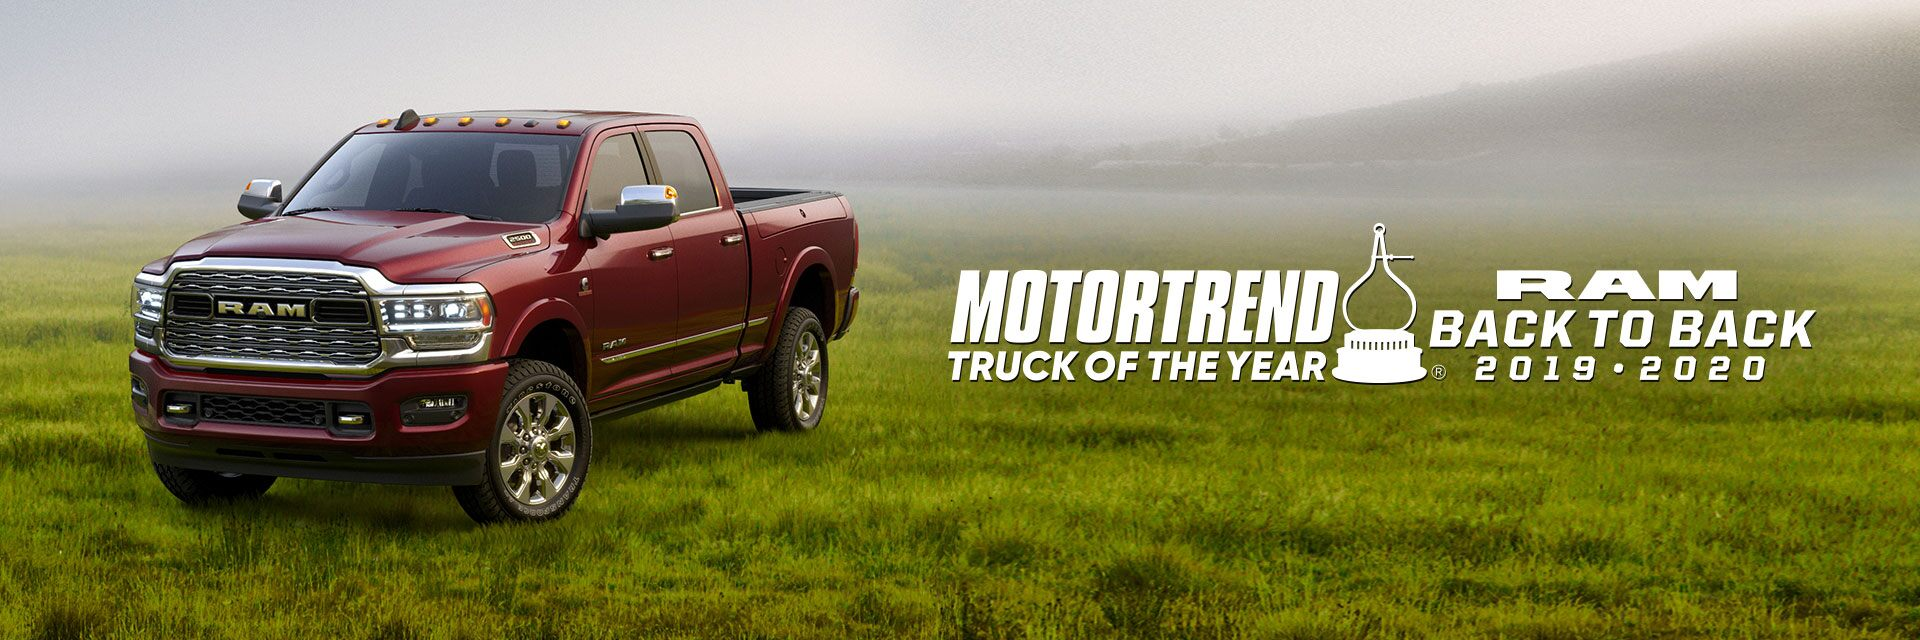 2020 Ram Heavy Duty Motor Trend Truck of the Year